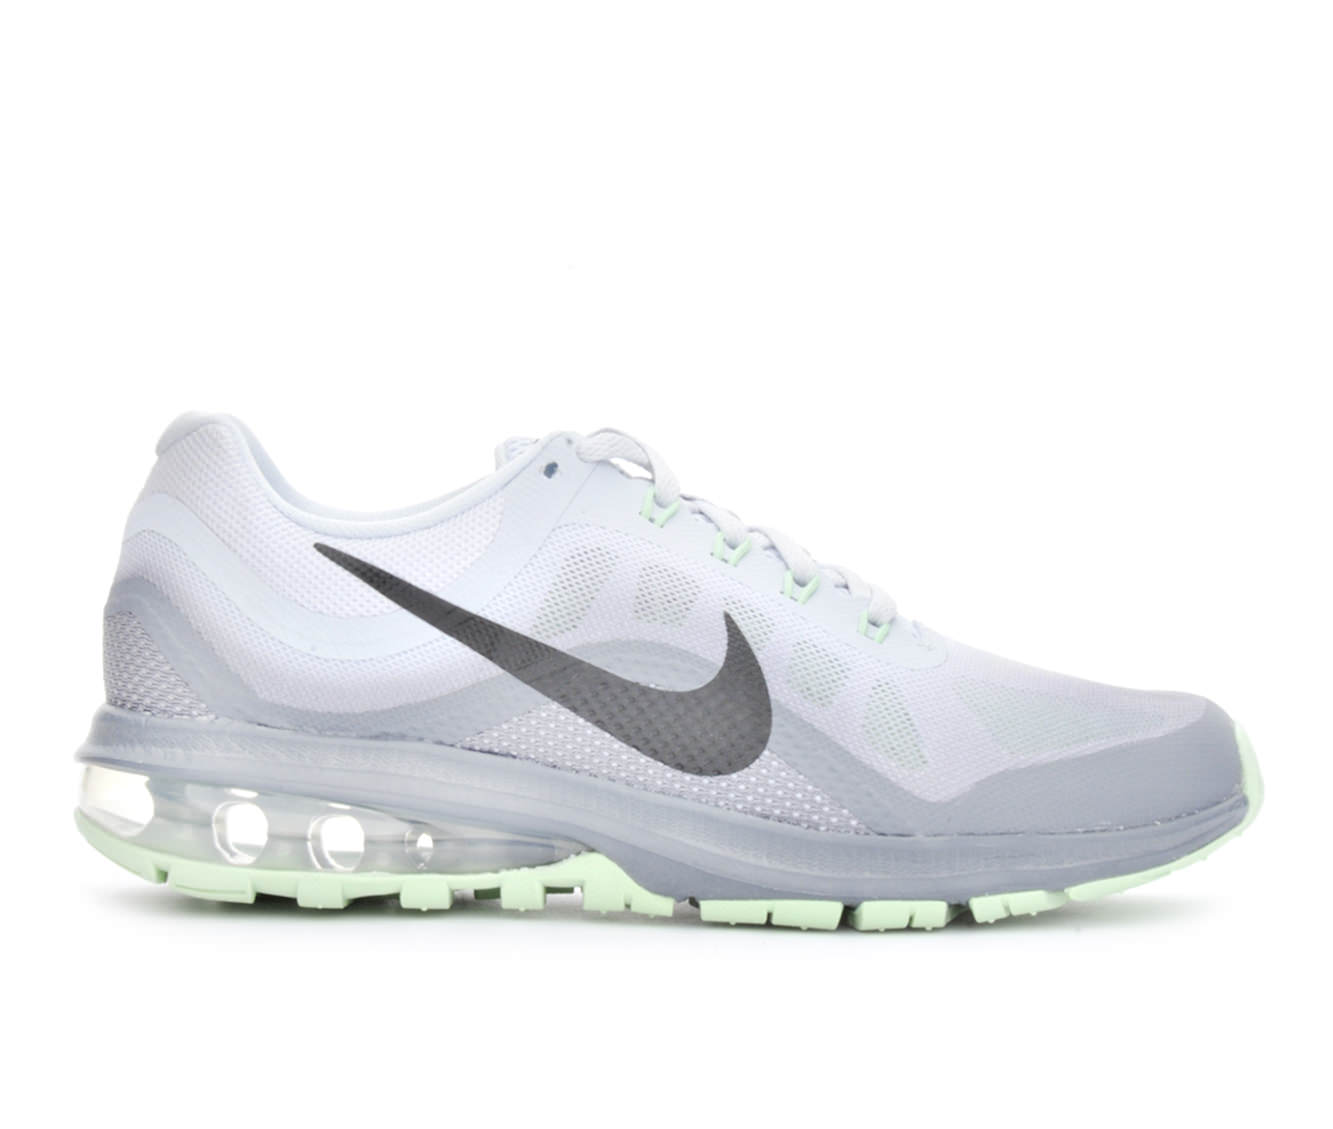 Women's Nike Air Max Dynasty 2 Running Shoes (Grey - Size 10) 1643206